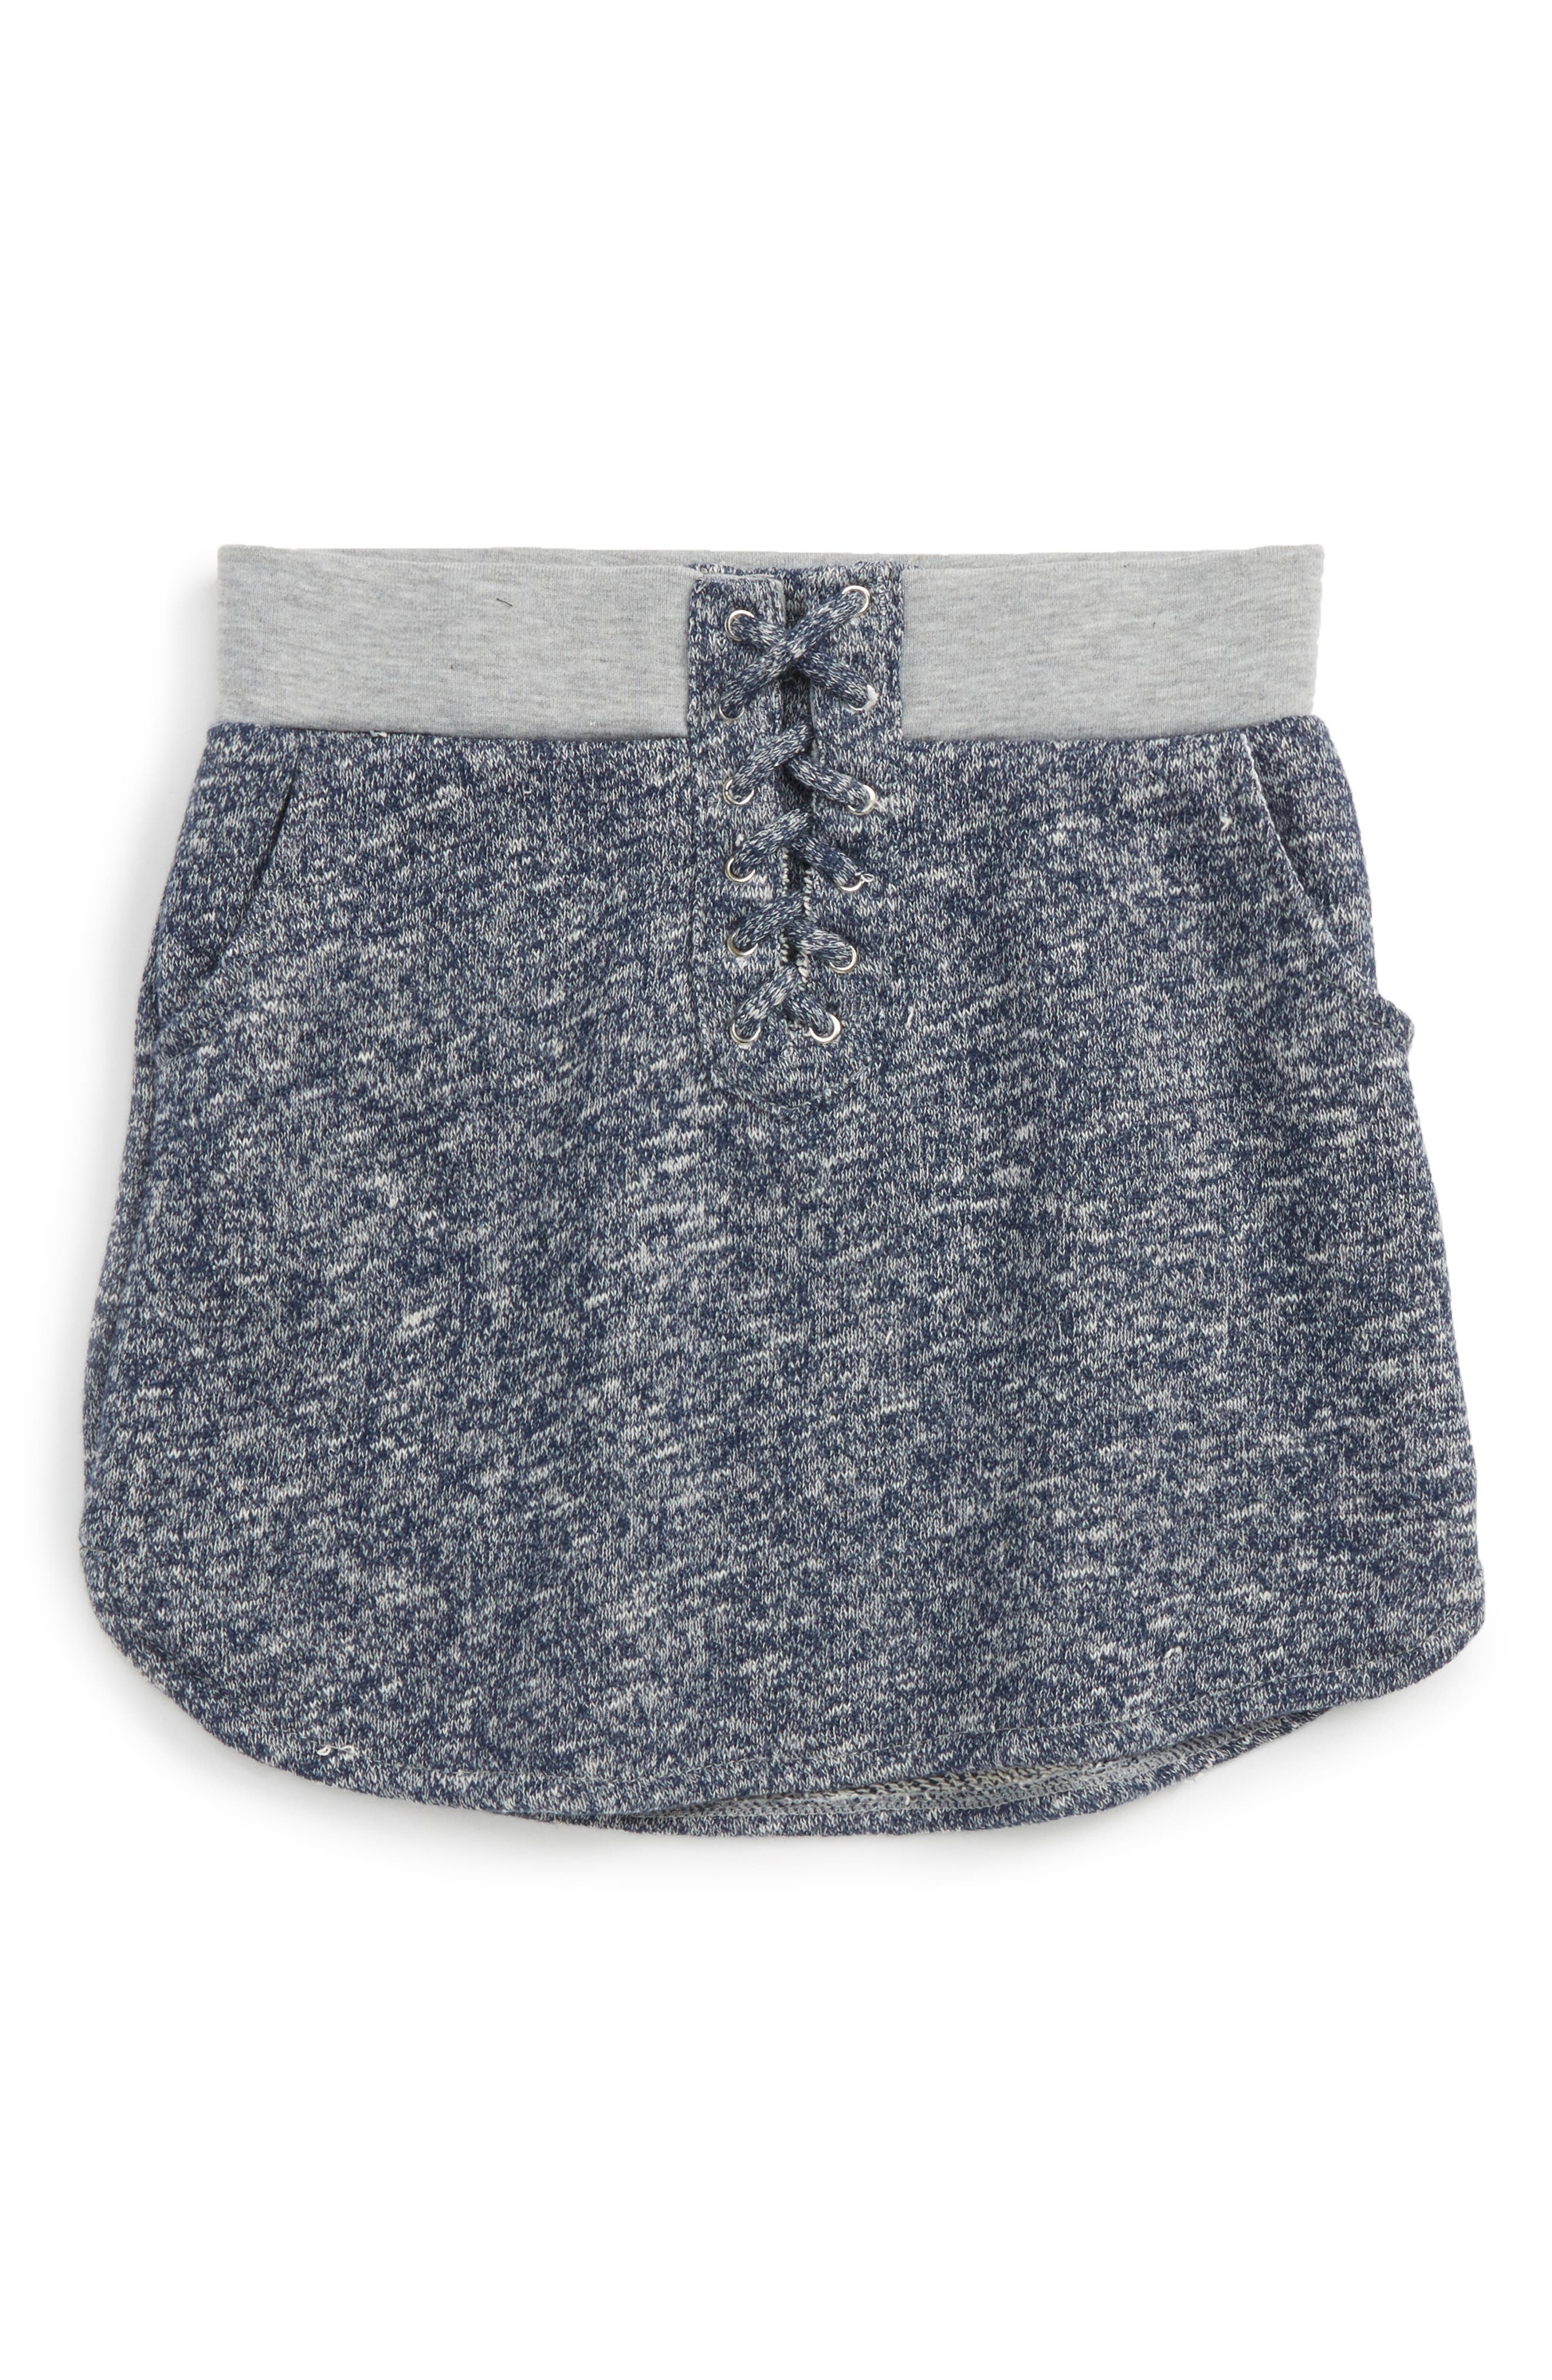 Lace-Up Skirt,                         Main,                         color, Grey